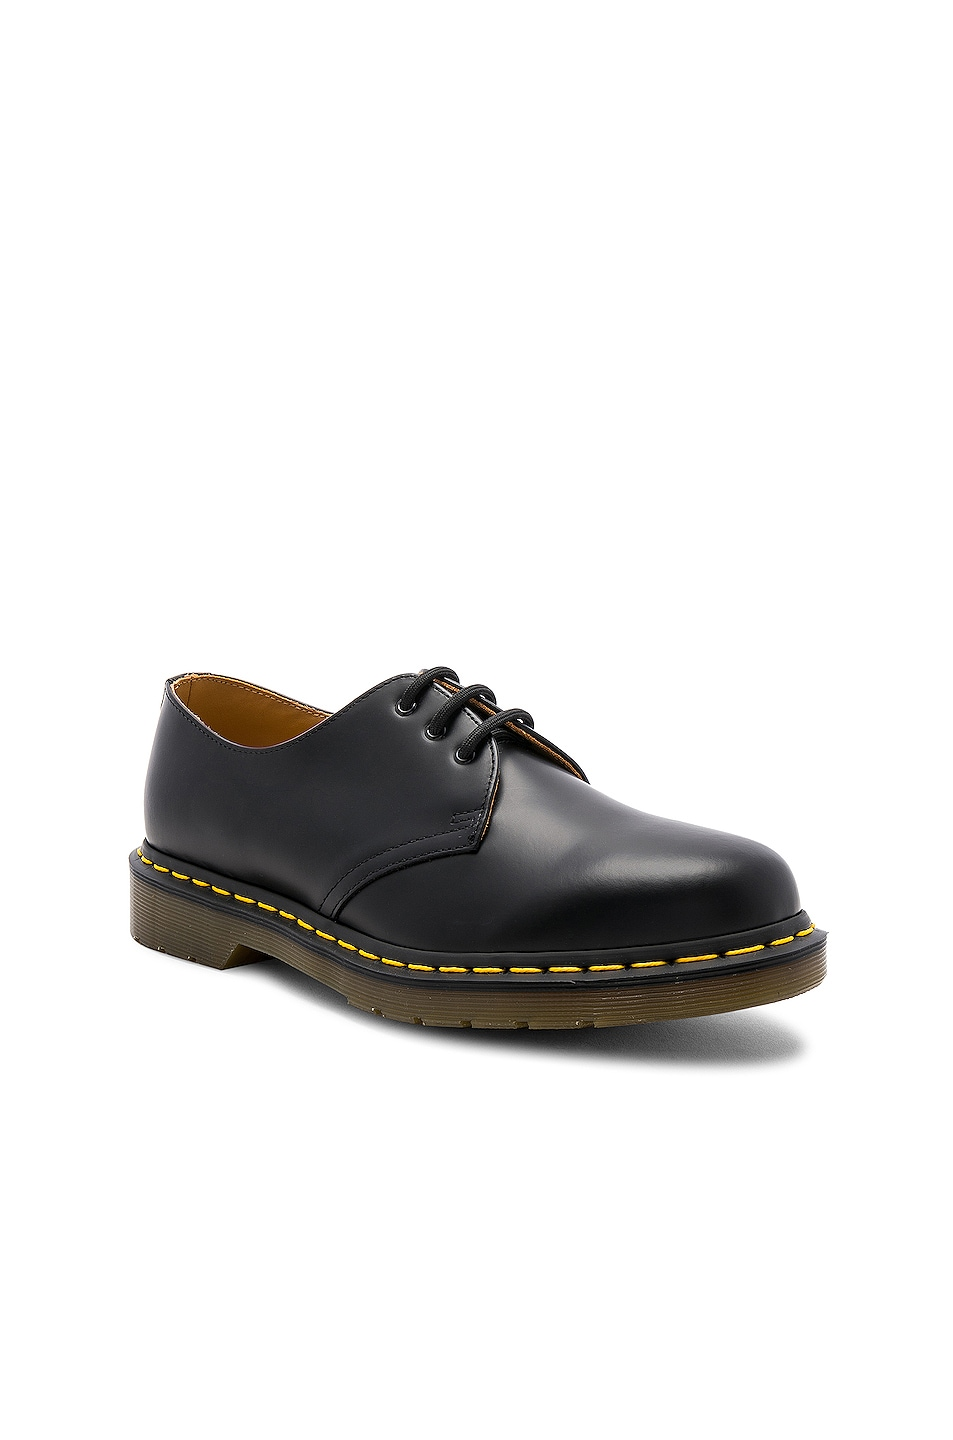 Image 2 of Dr. Martens 1461 3 Eye Gibson in Black